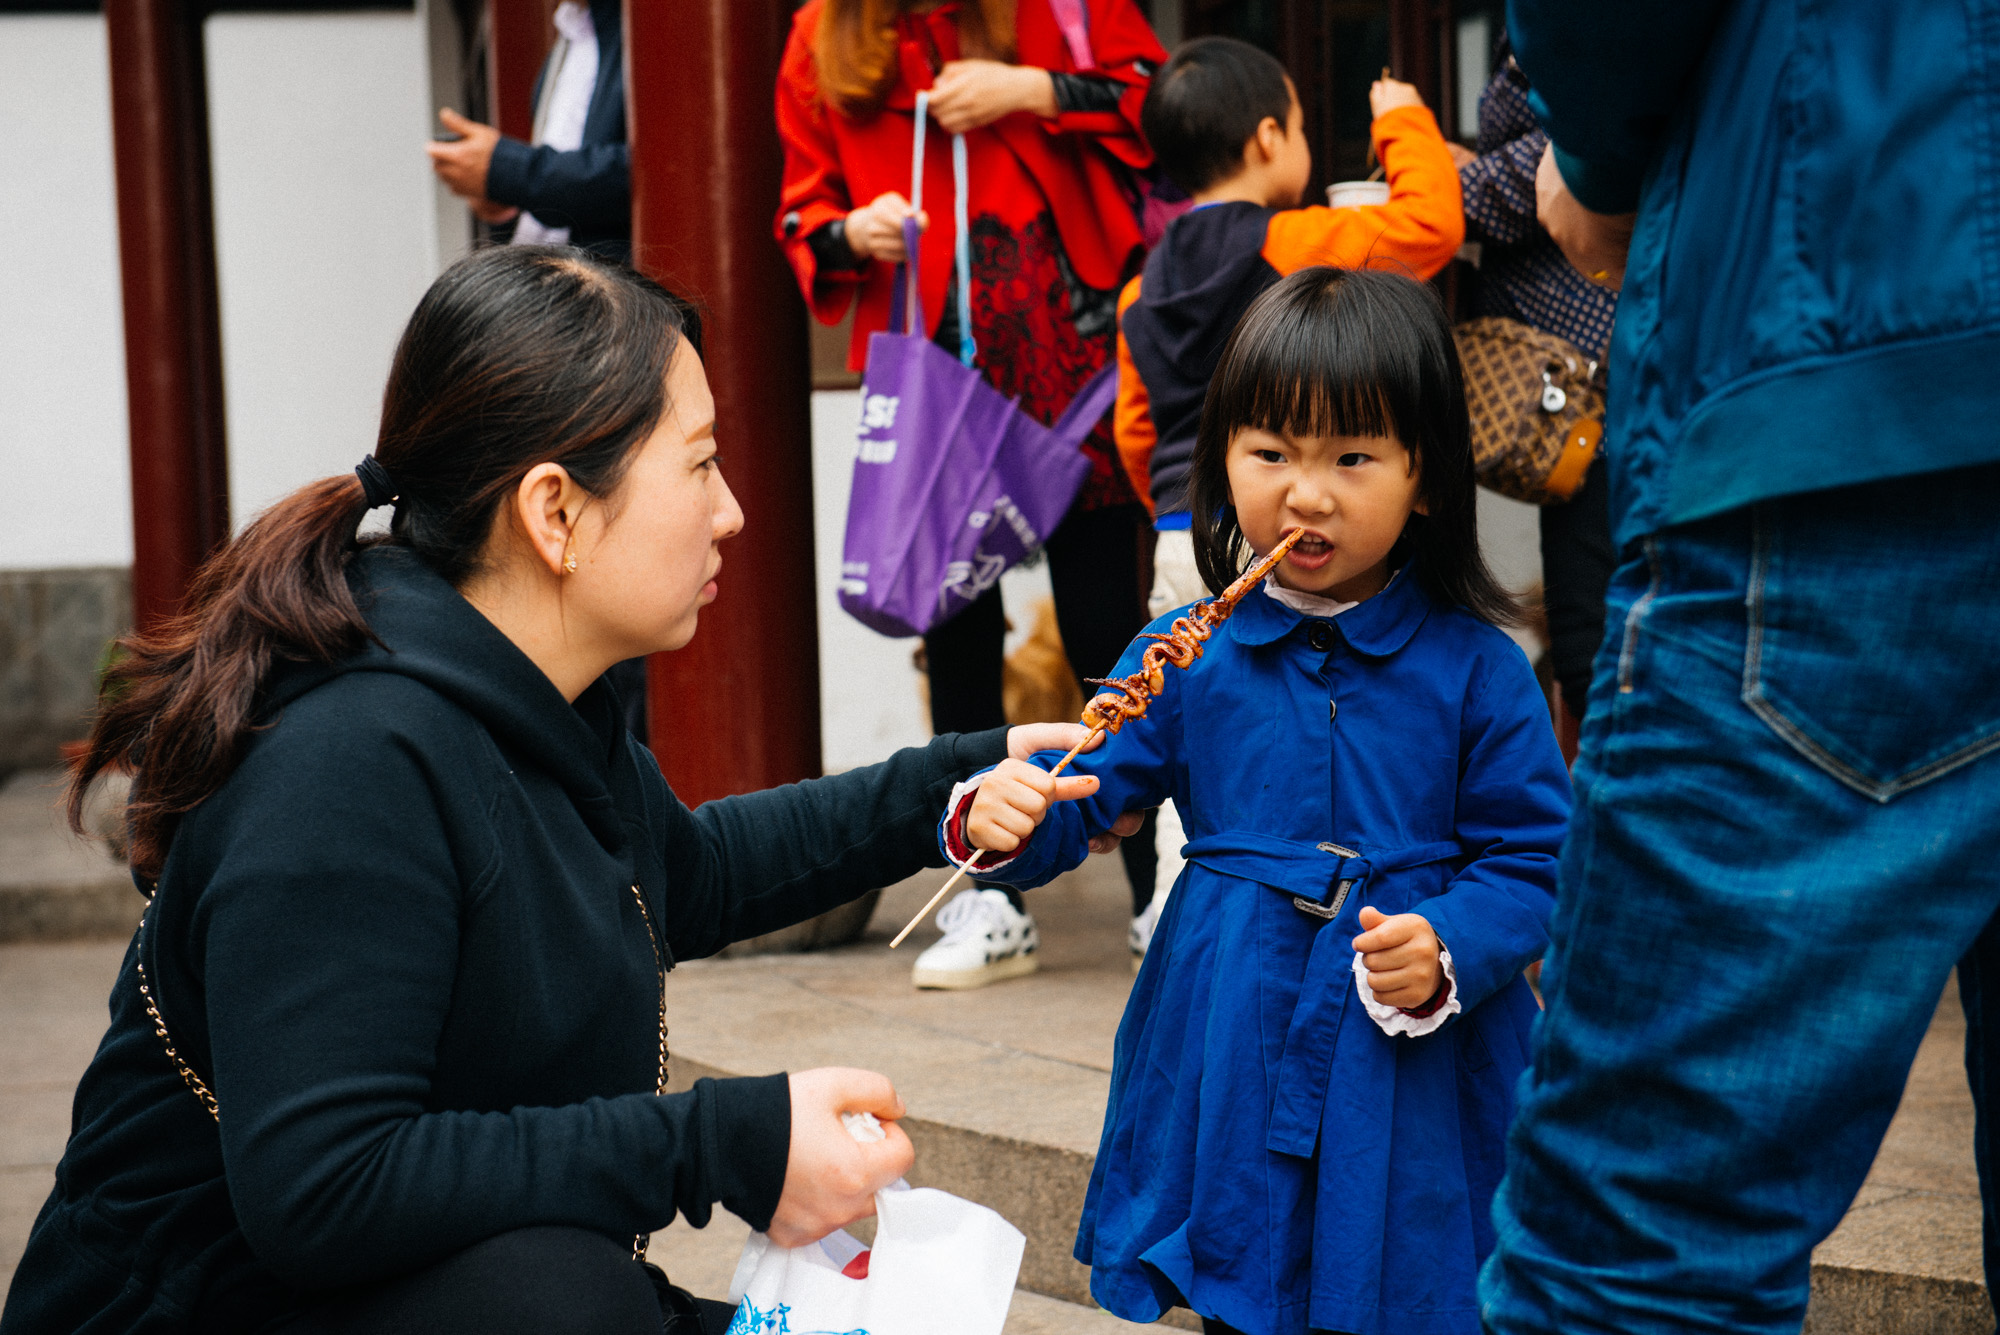 Little girl struggles to eat a squid tentacle. Street food is one of the main attractions in Qibao.